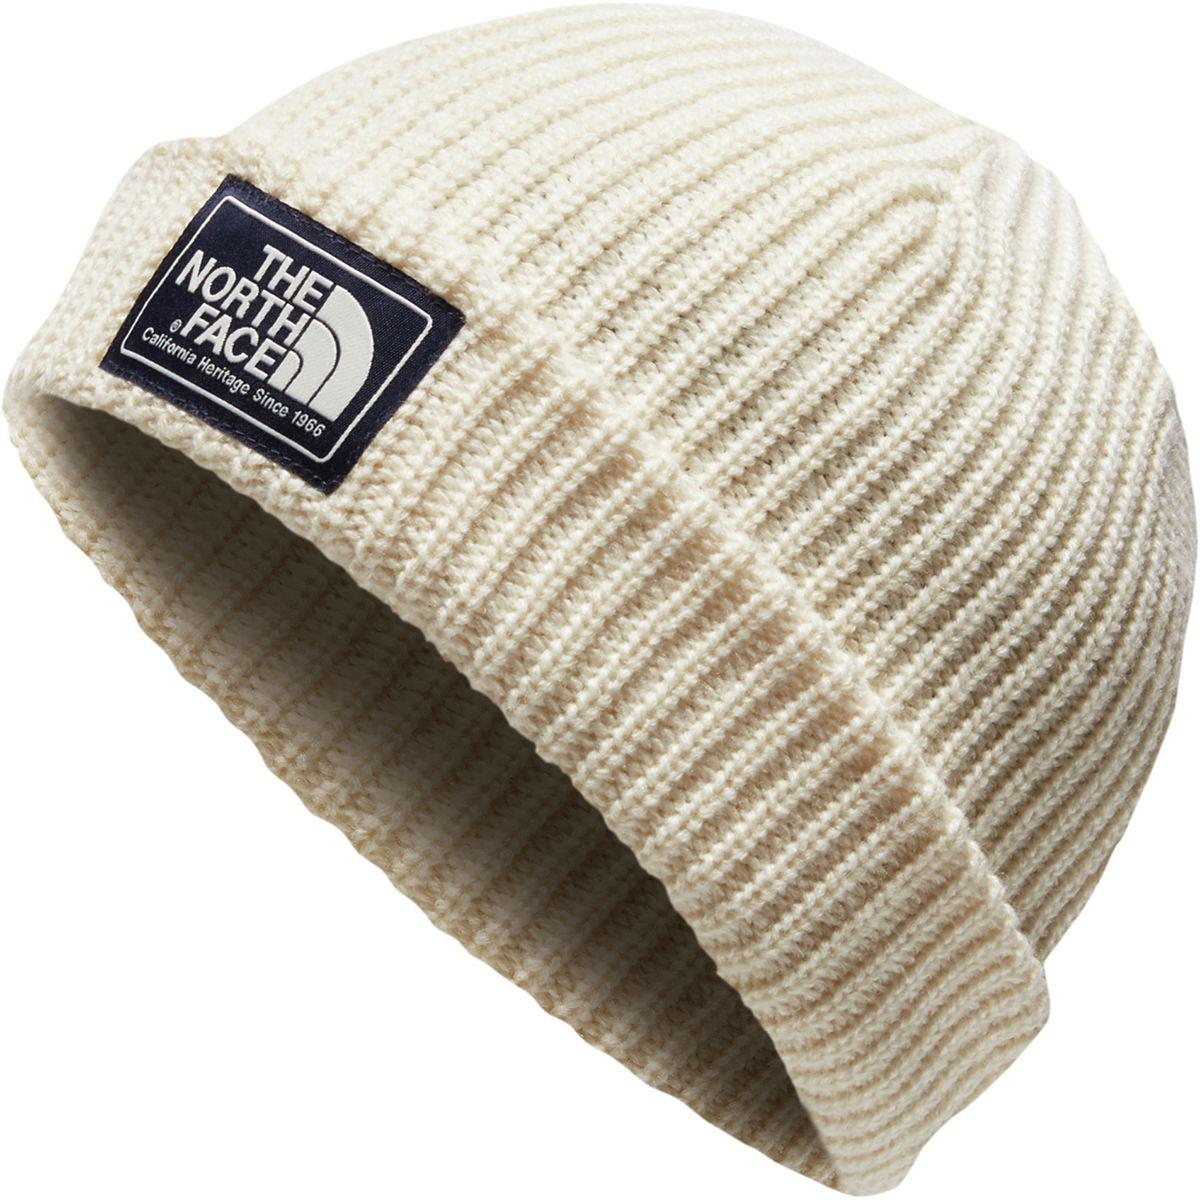 1e583fd9c9e Lyst - The North Face Salty Dog Beanie in Natural for Men